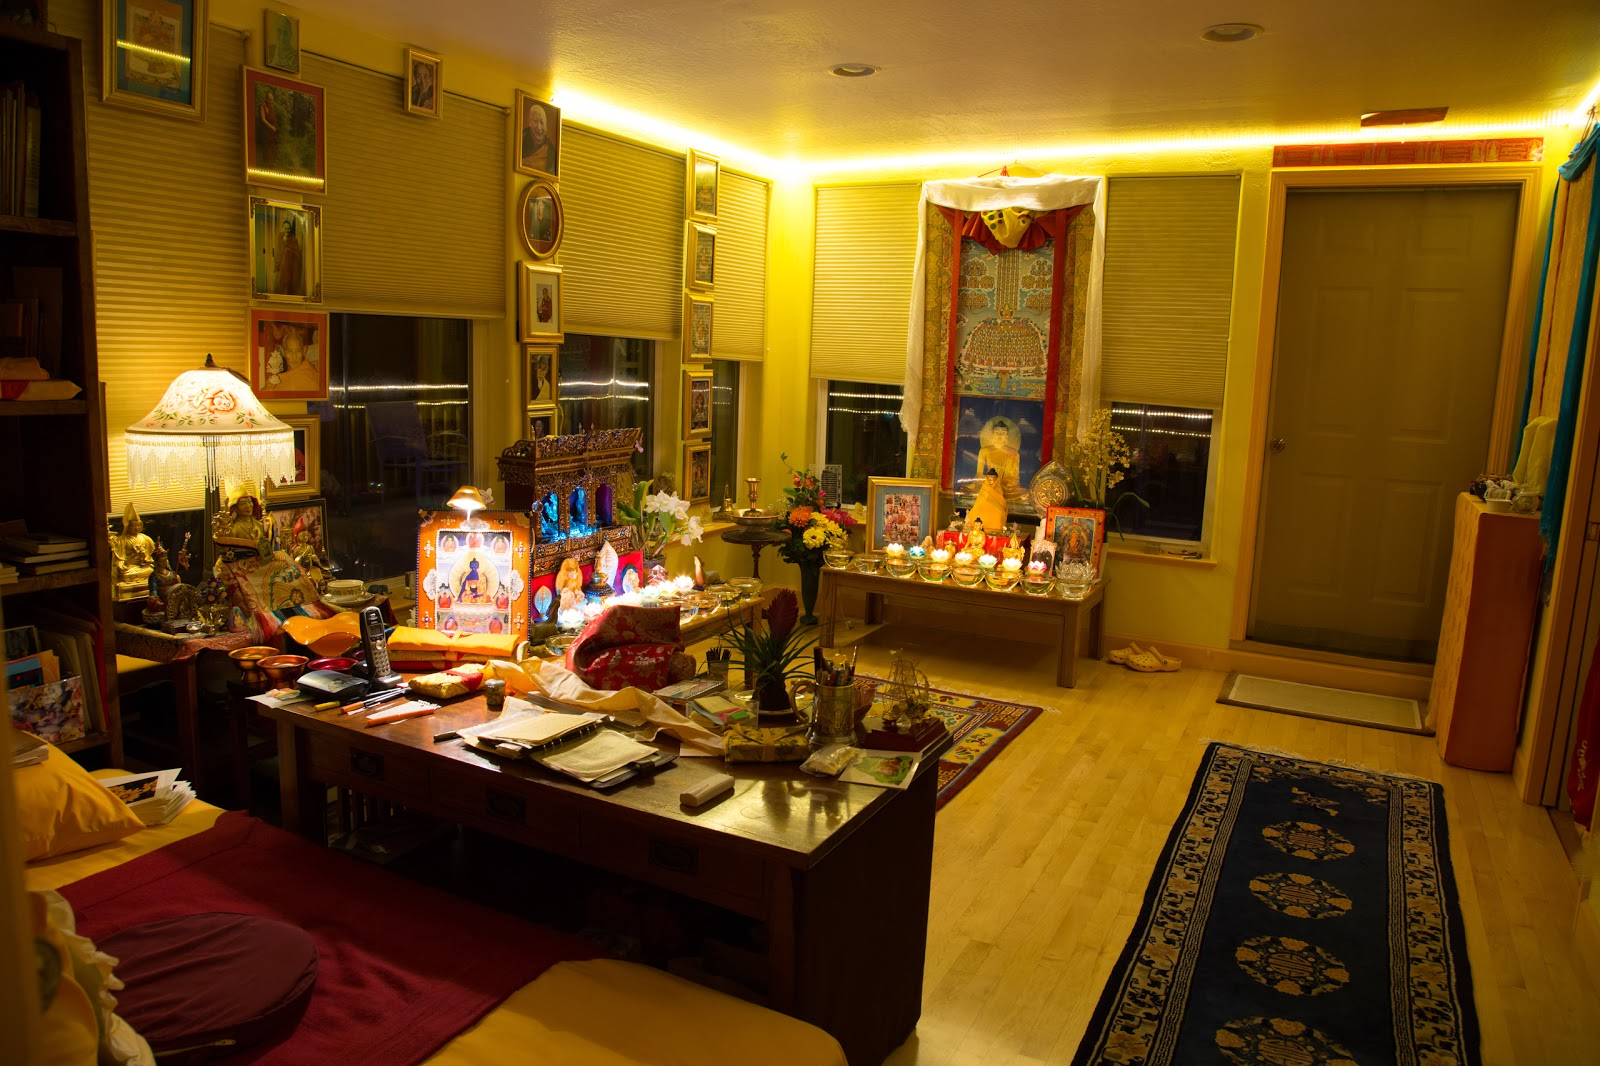 Prajnaparamita room. Photo by Ven. Thubten Kunsang.